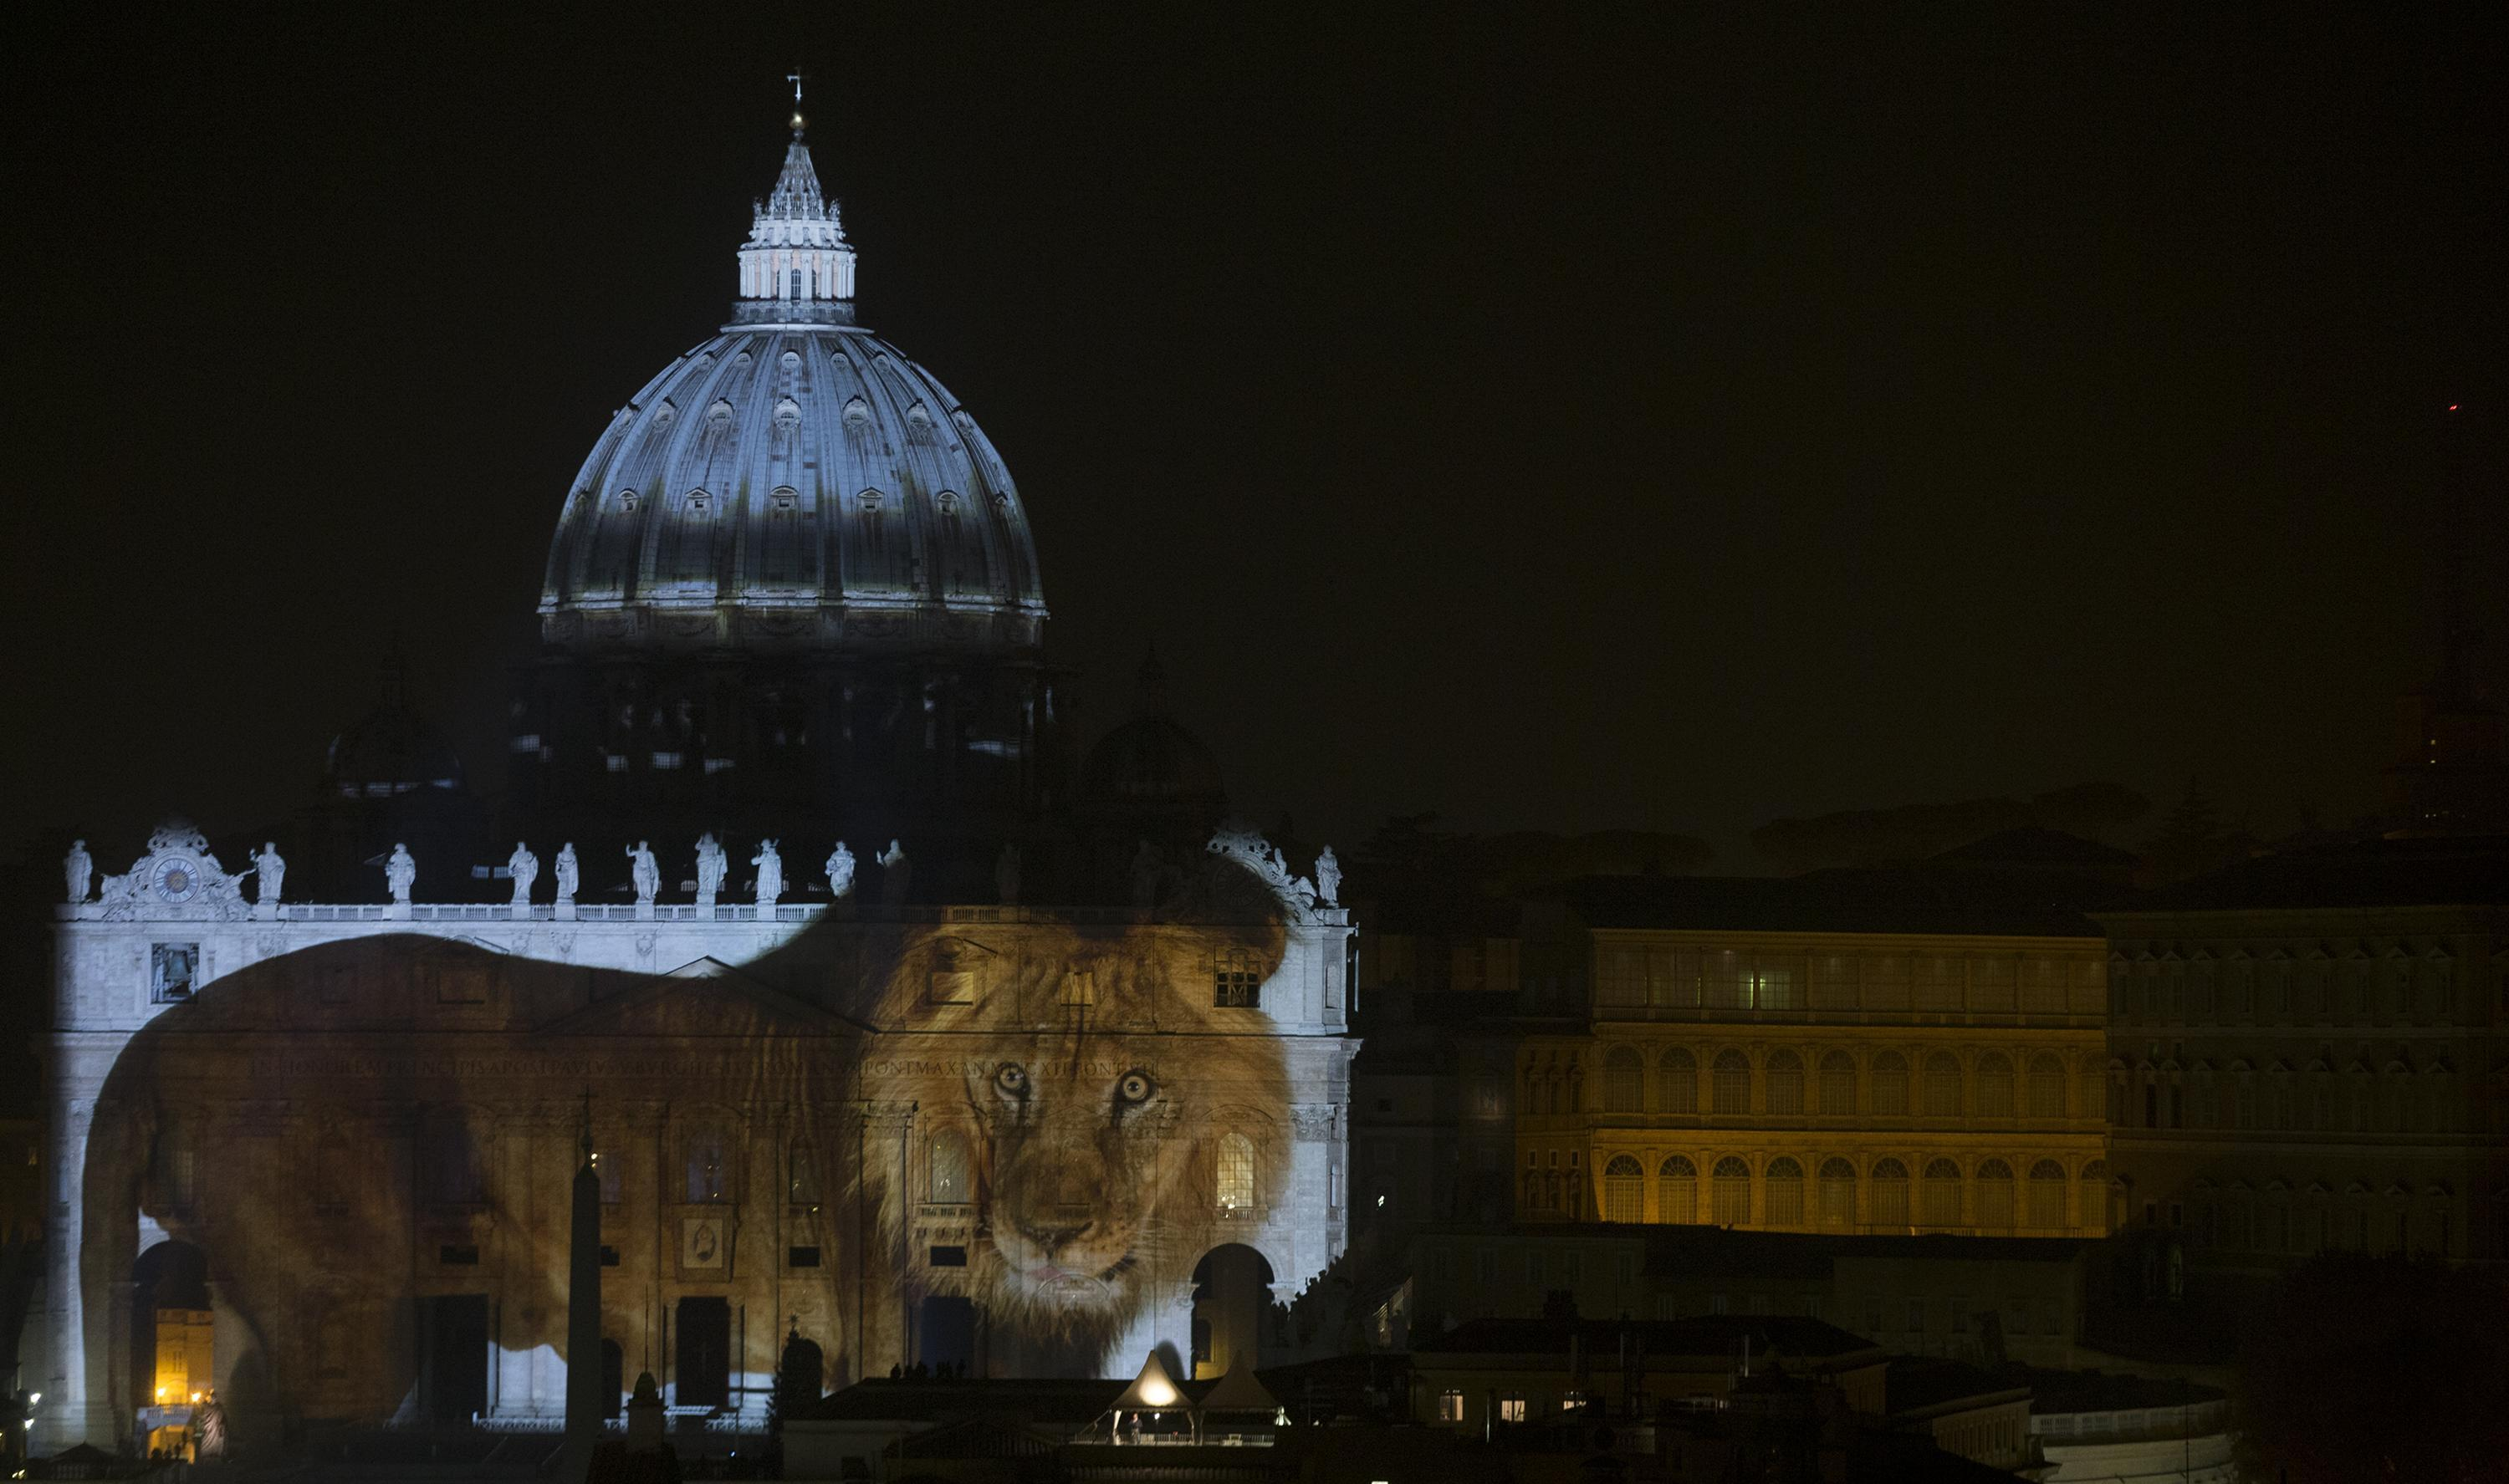 The facade of Saint Peter's Basilica illuminated for Fiat Lux event as a tribute for Pope Francis seen from Castel Sant'Angelo